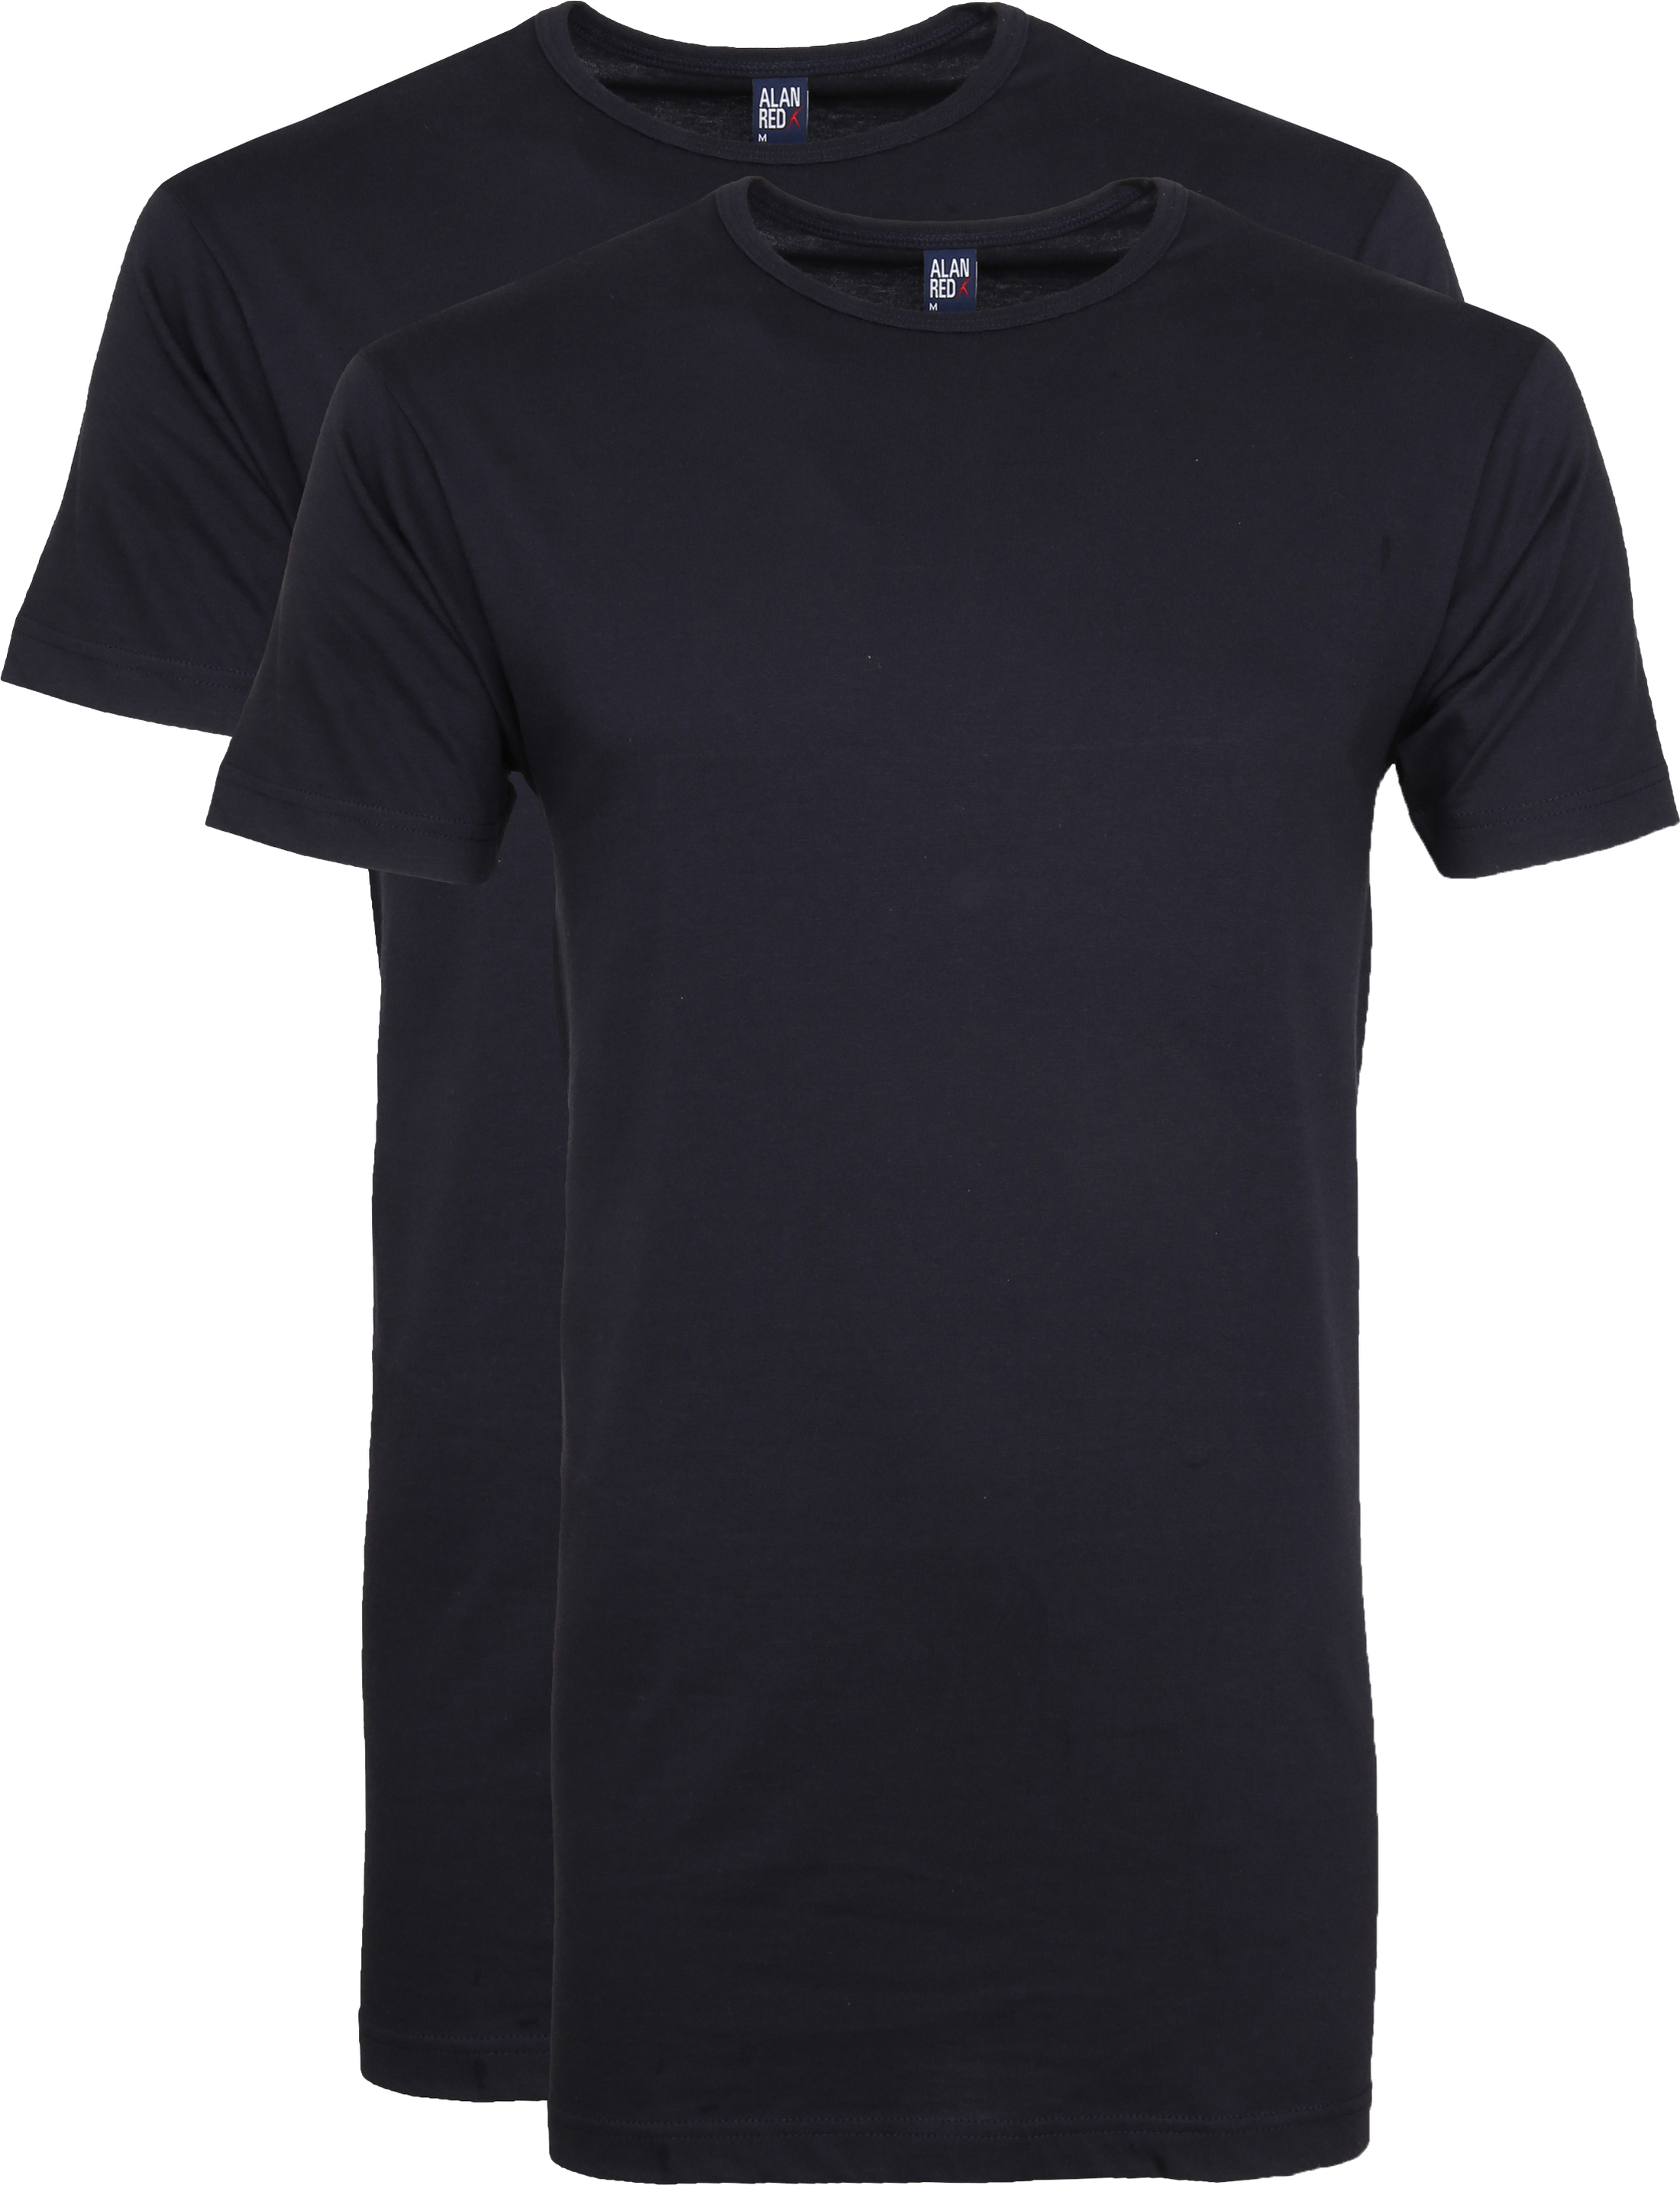 Alan Red Extra Long T-Shirts Derby Navy (2-Pack) foto 0